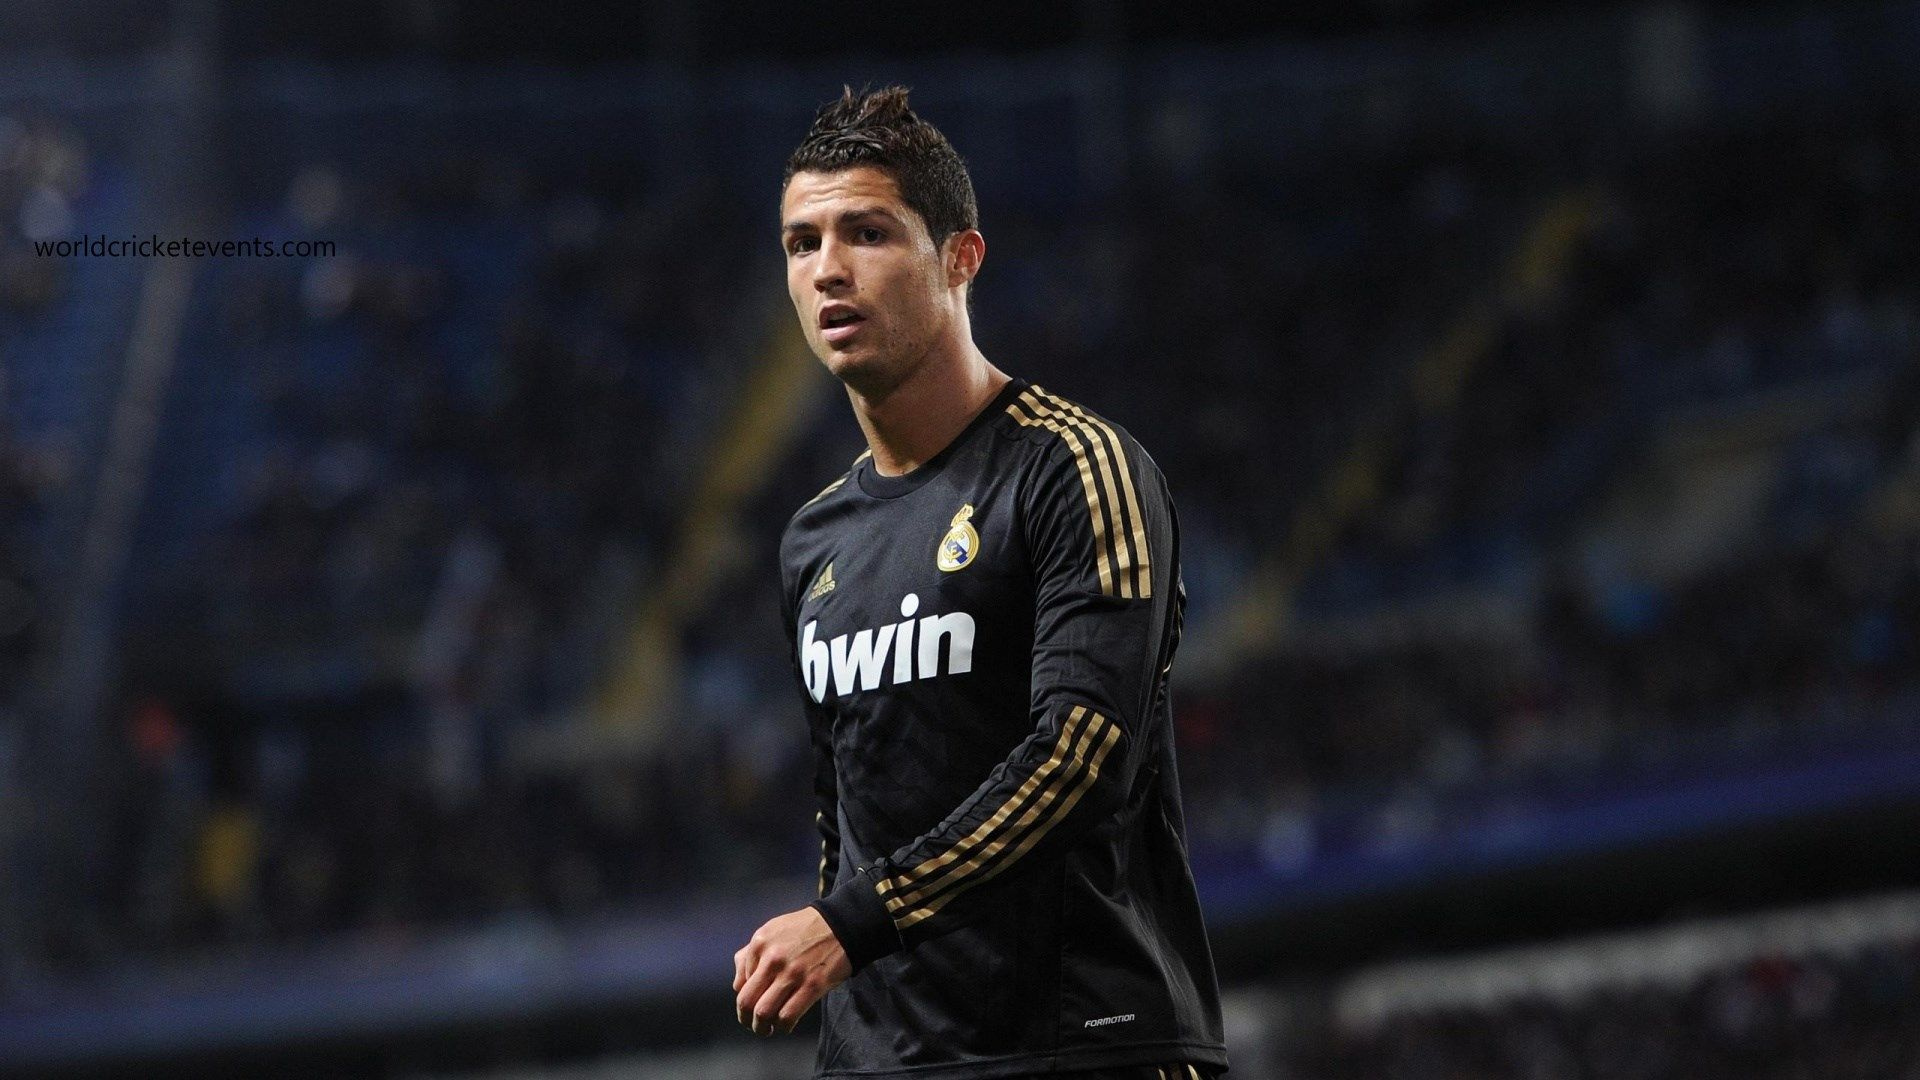 pin by cricket events on cristiano ronaldo best 30 hd desktop